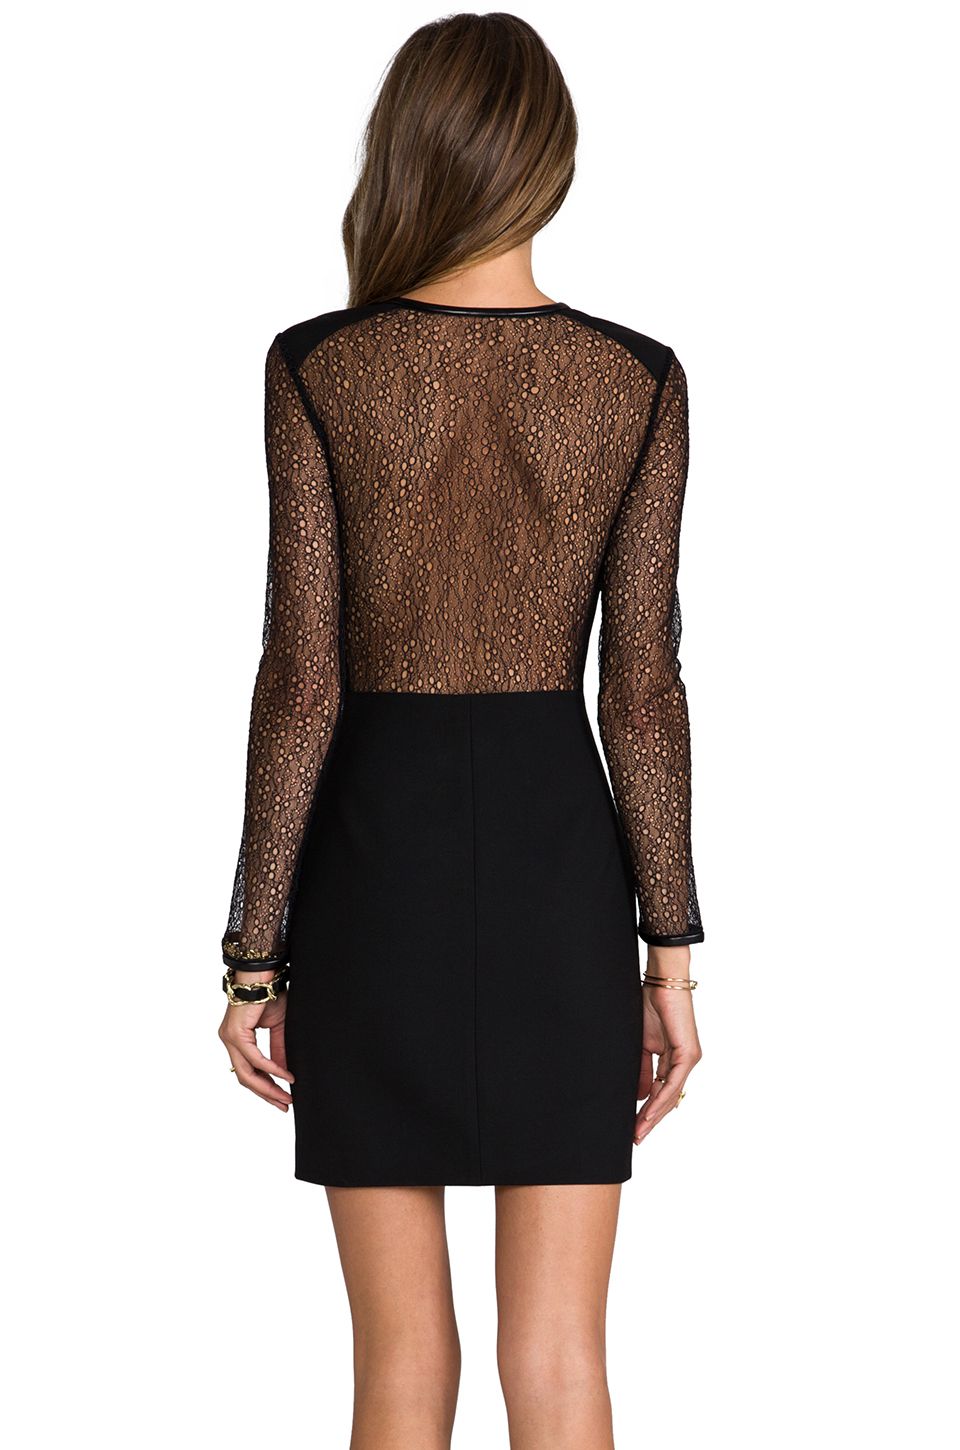 Robert rodriguez Lace Back Dress in Black in Black | Lyst